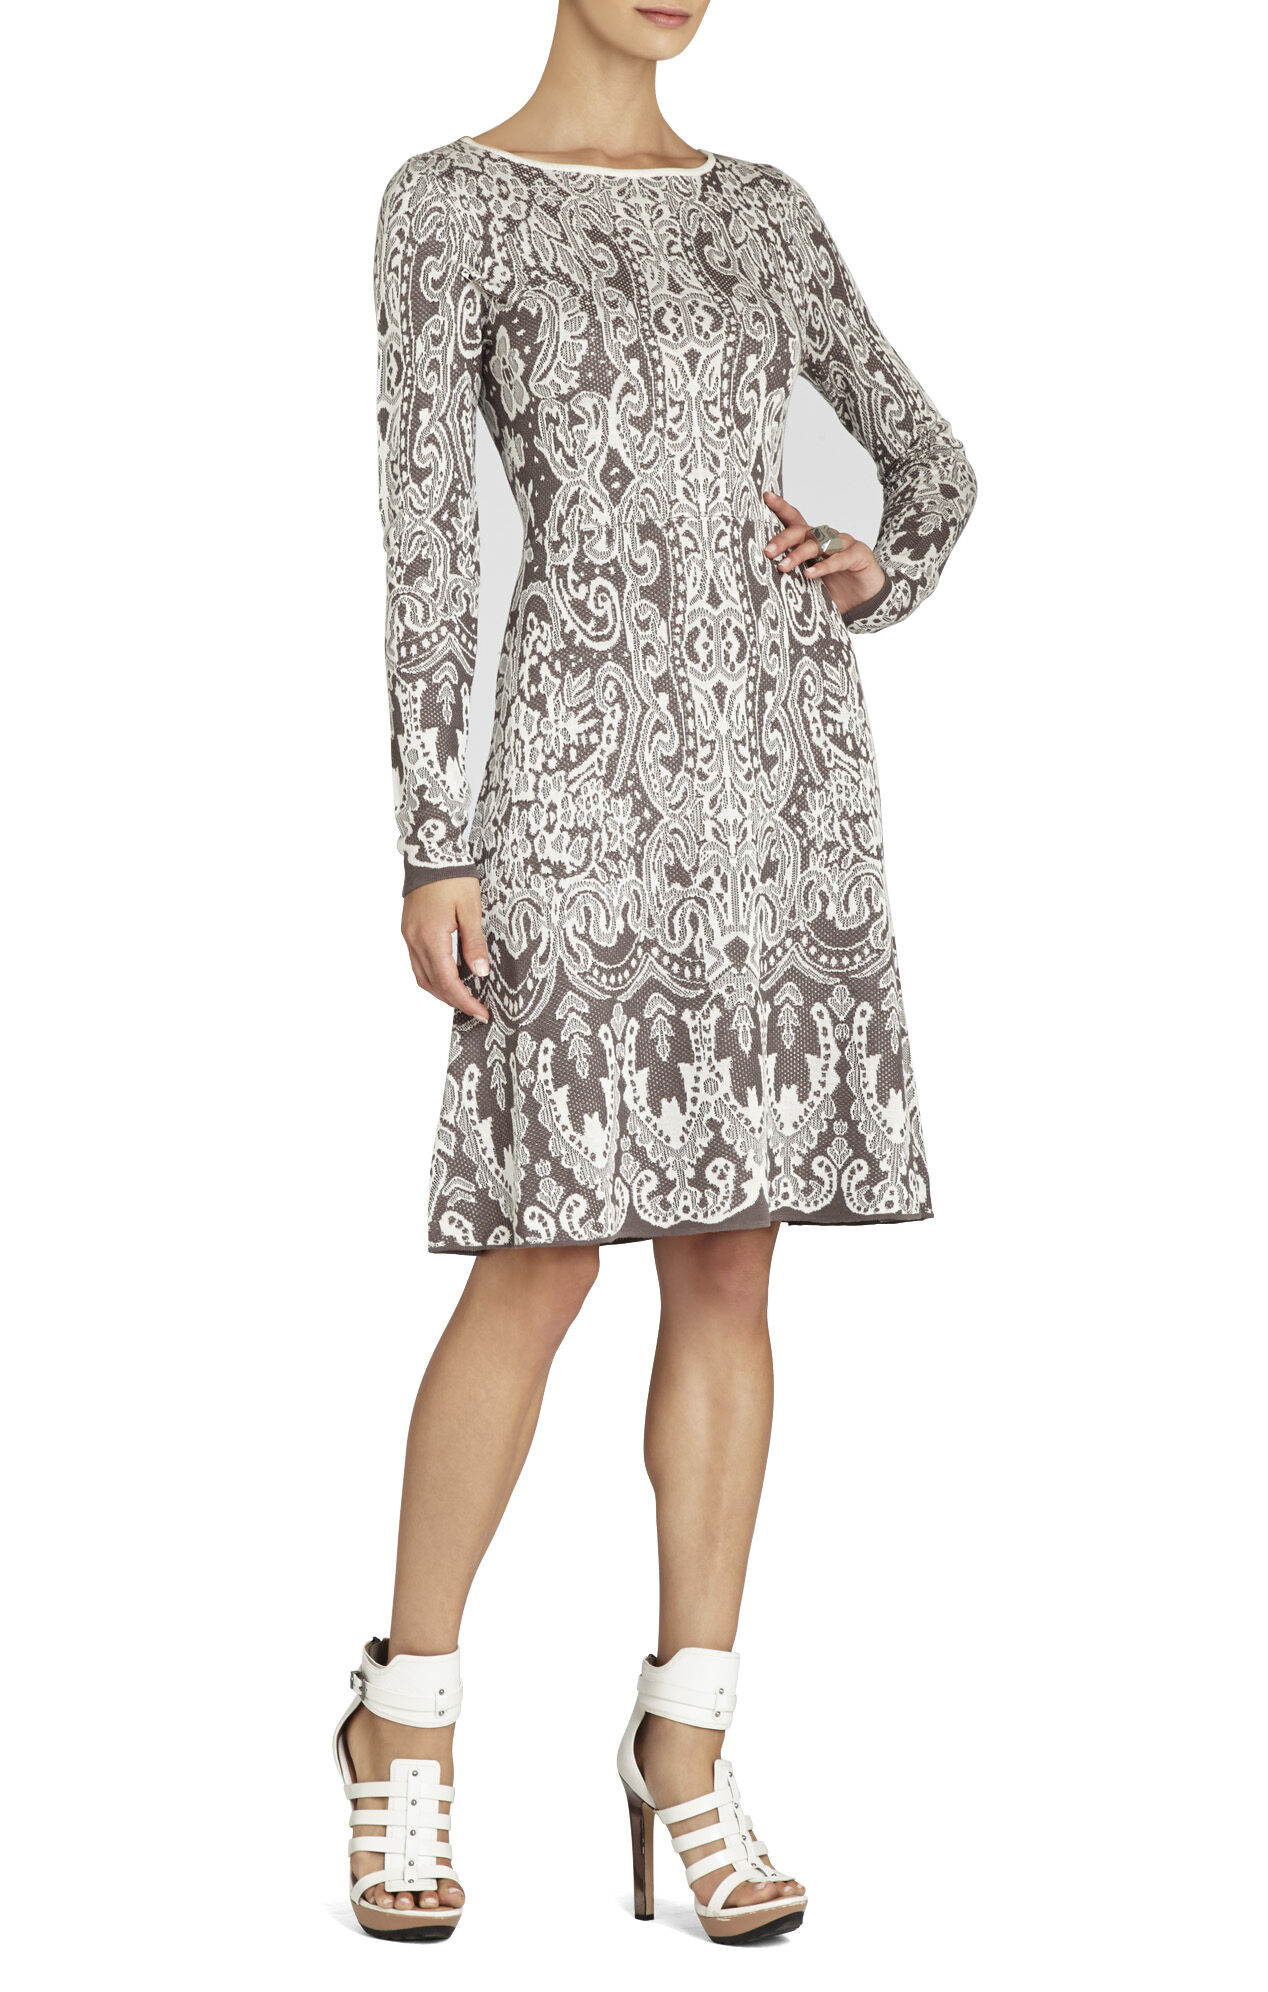 Petra Relief Jacquard Lace A-Line Dress